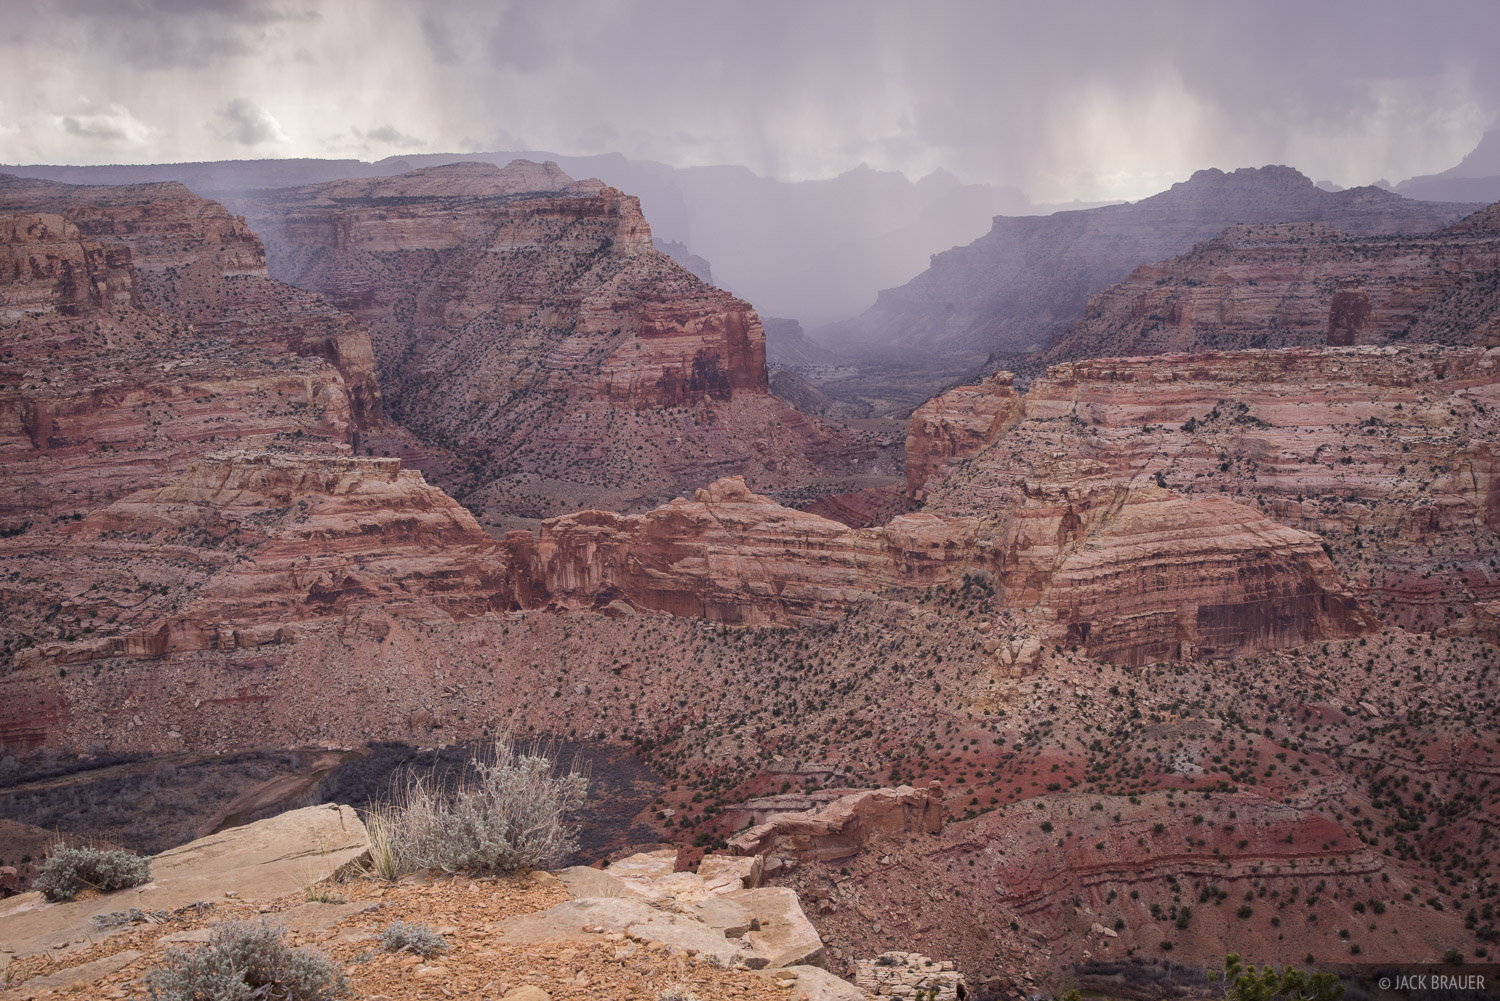 A spring snowstorm passes over the Little Grand Canyon, through which the San Rafael River flows.